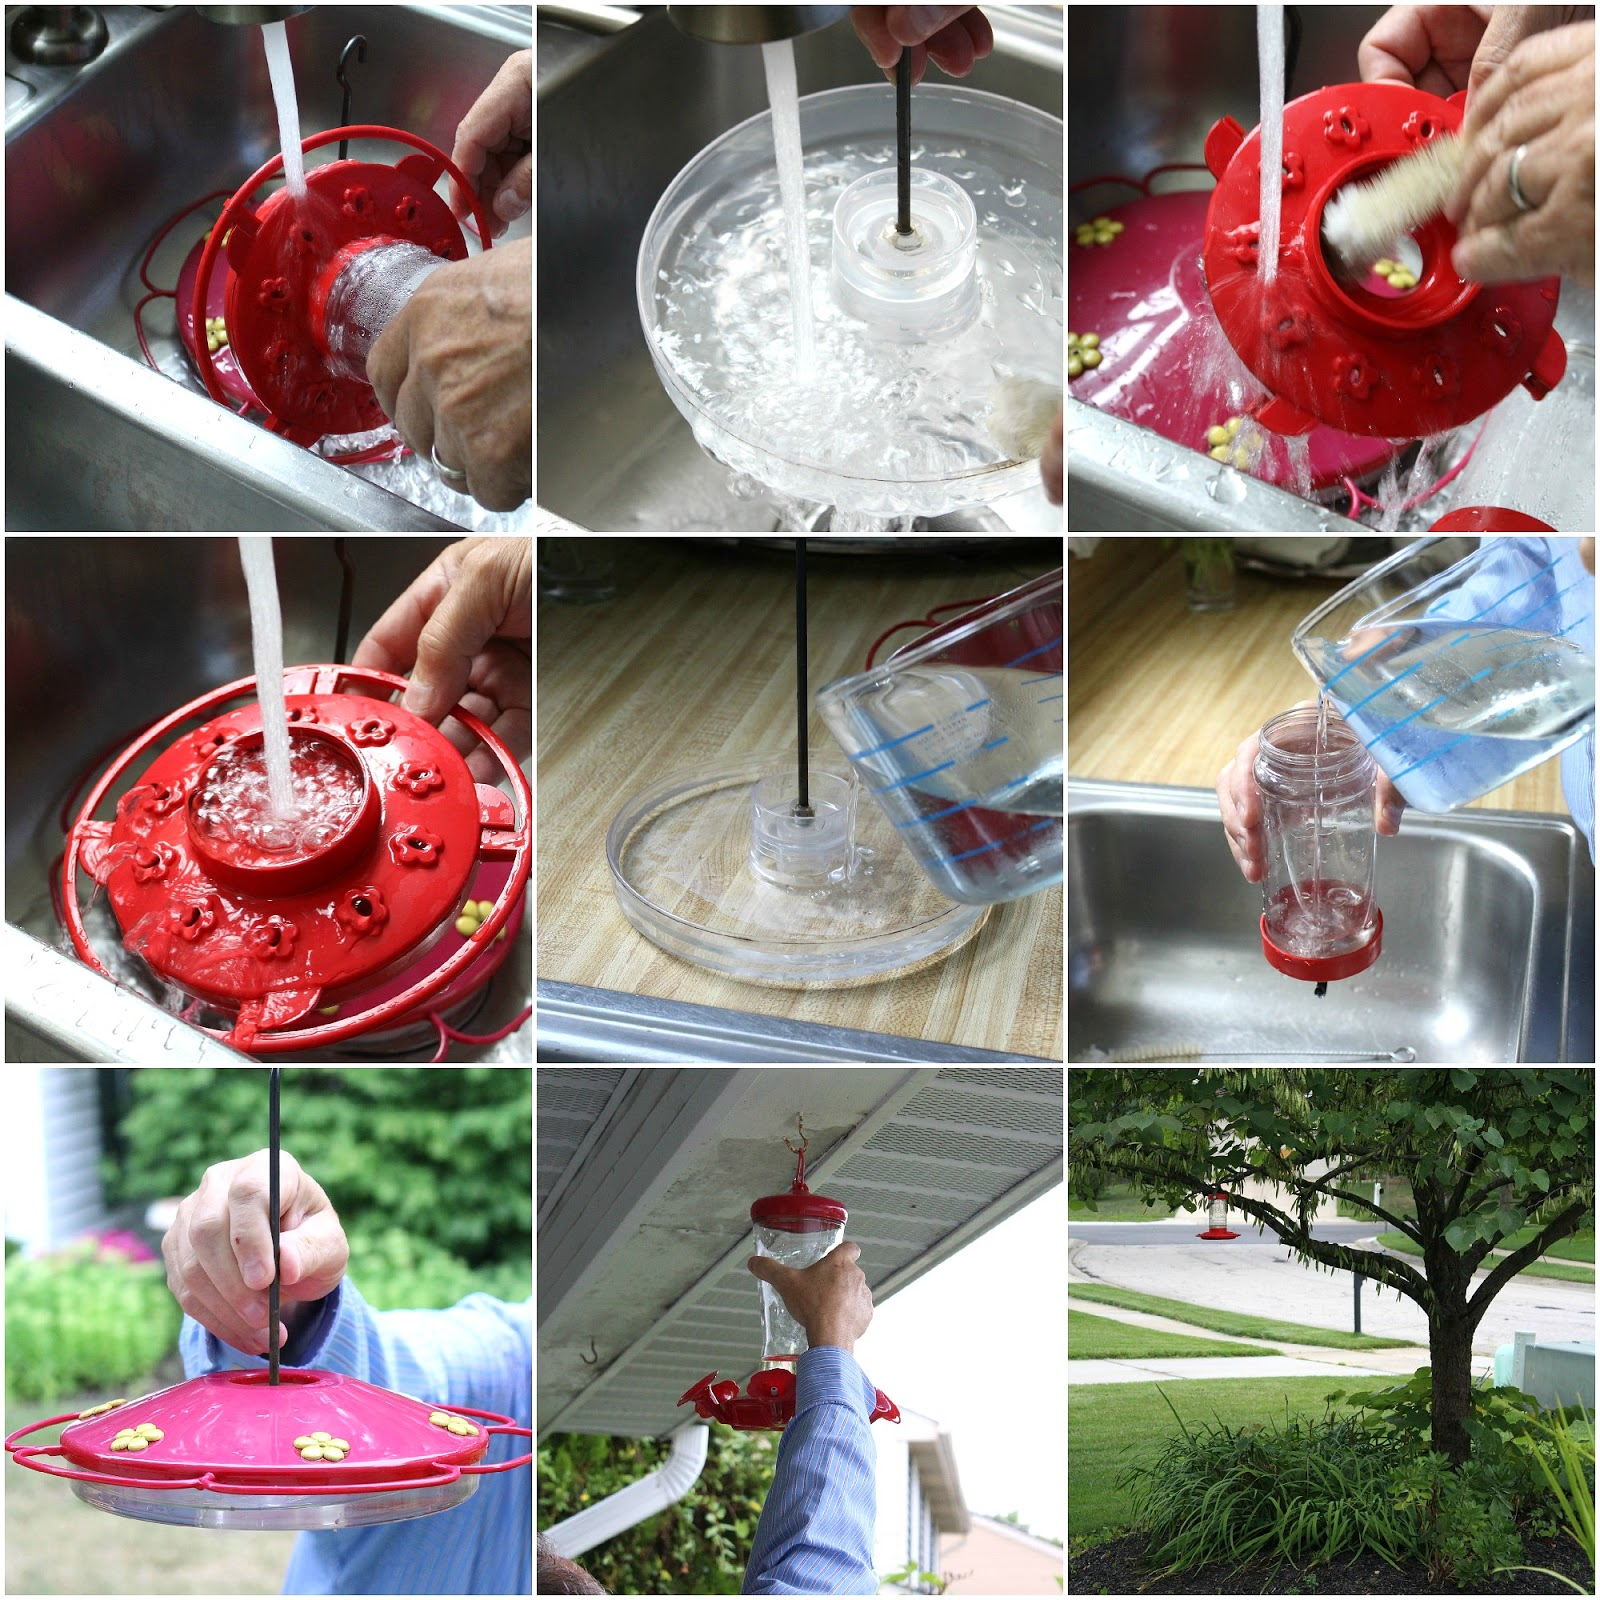 Maintenance of Your Feeder | Hummingbird Feeder Recipe And More For The Outdoorsy Homesteader